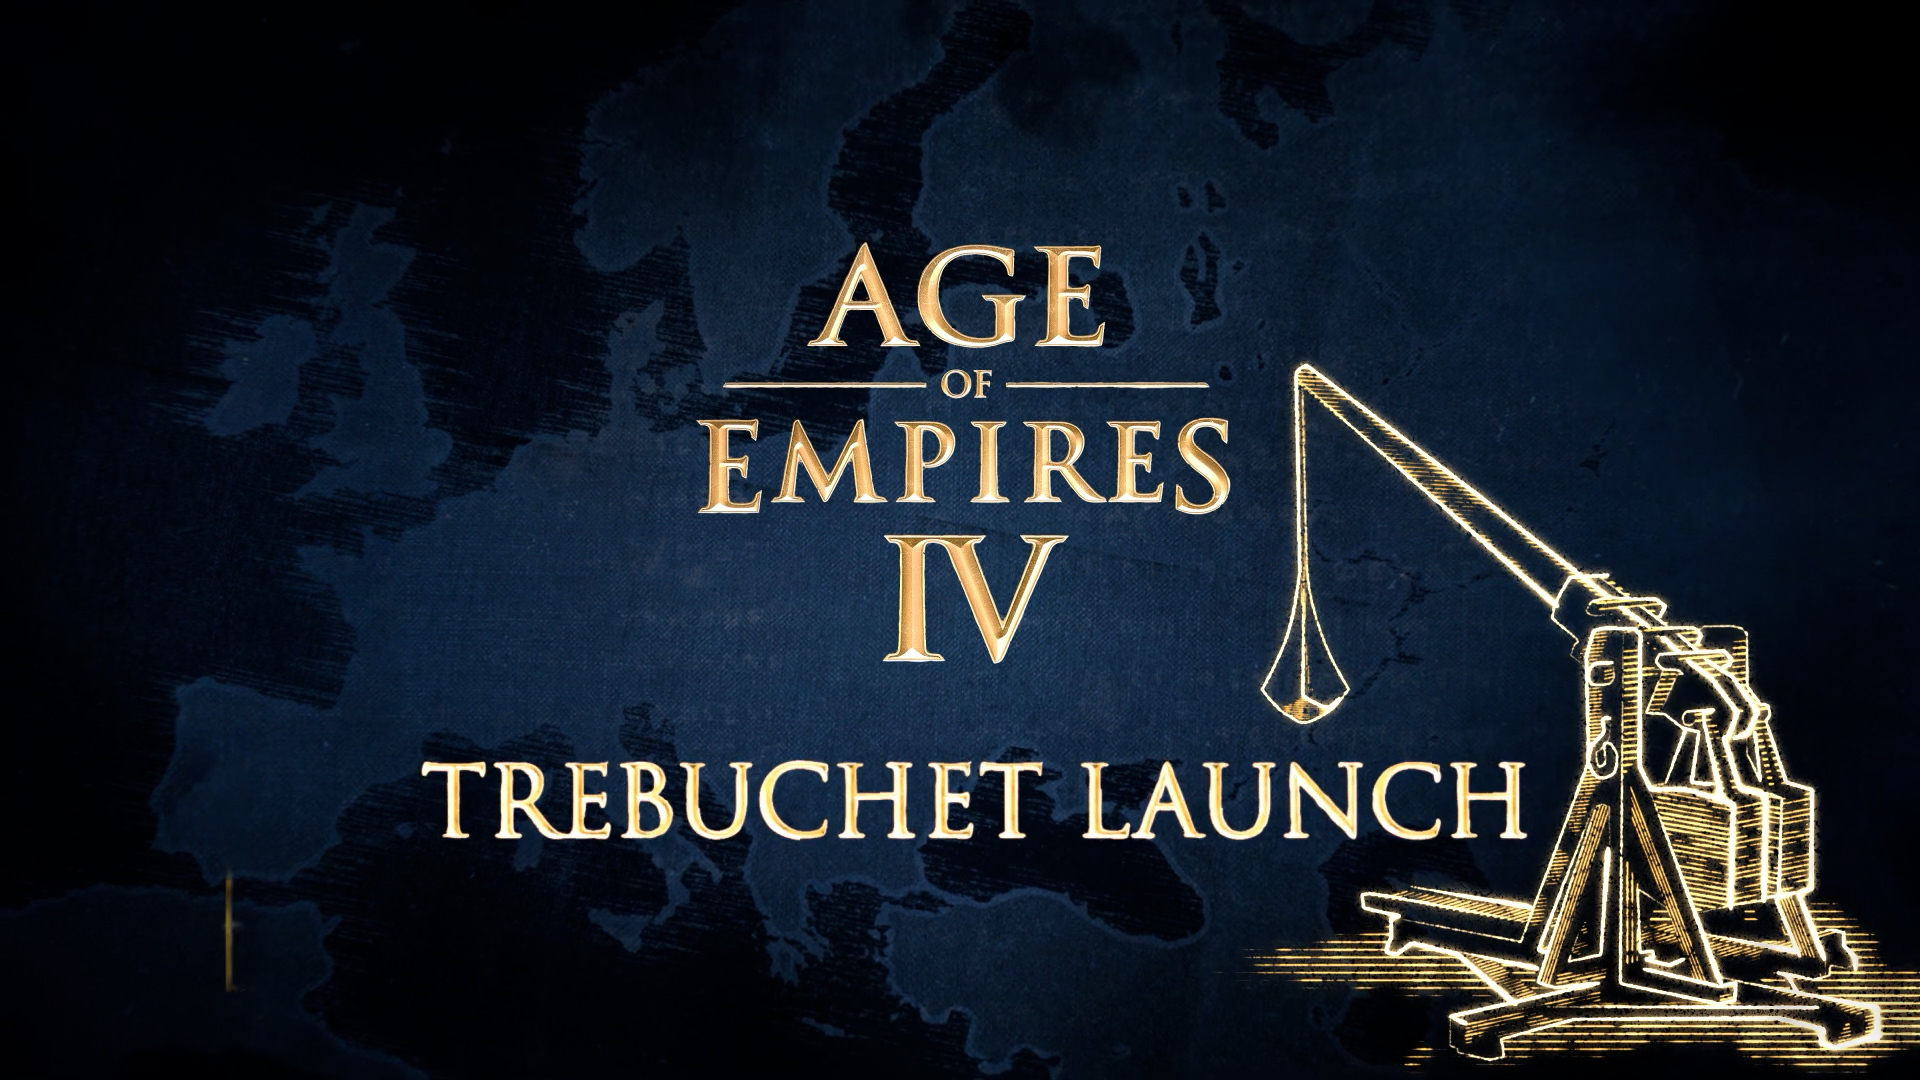 Age Of Empires IV - Official Trebuchet Launch Trailer